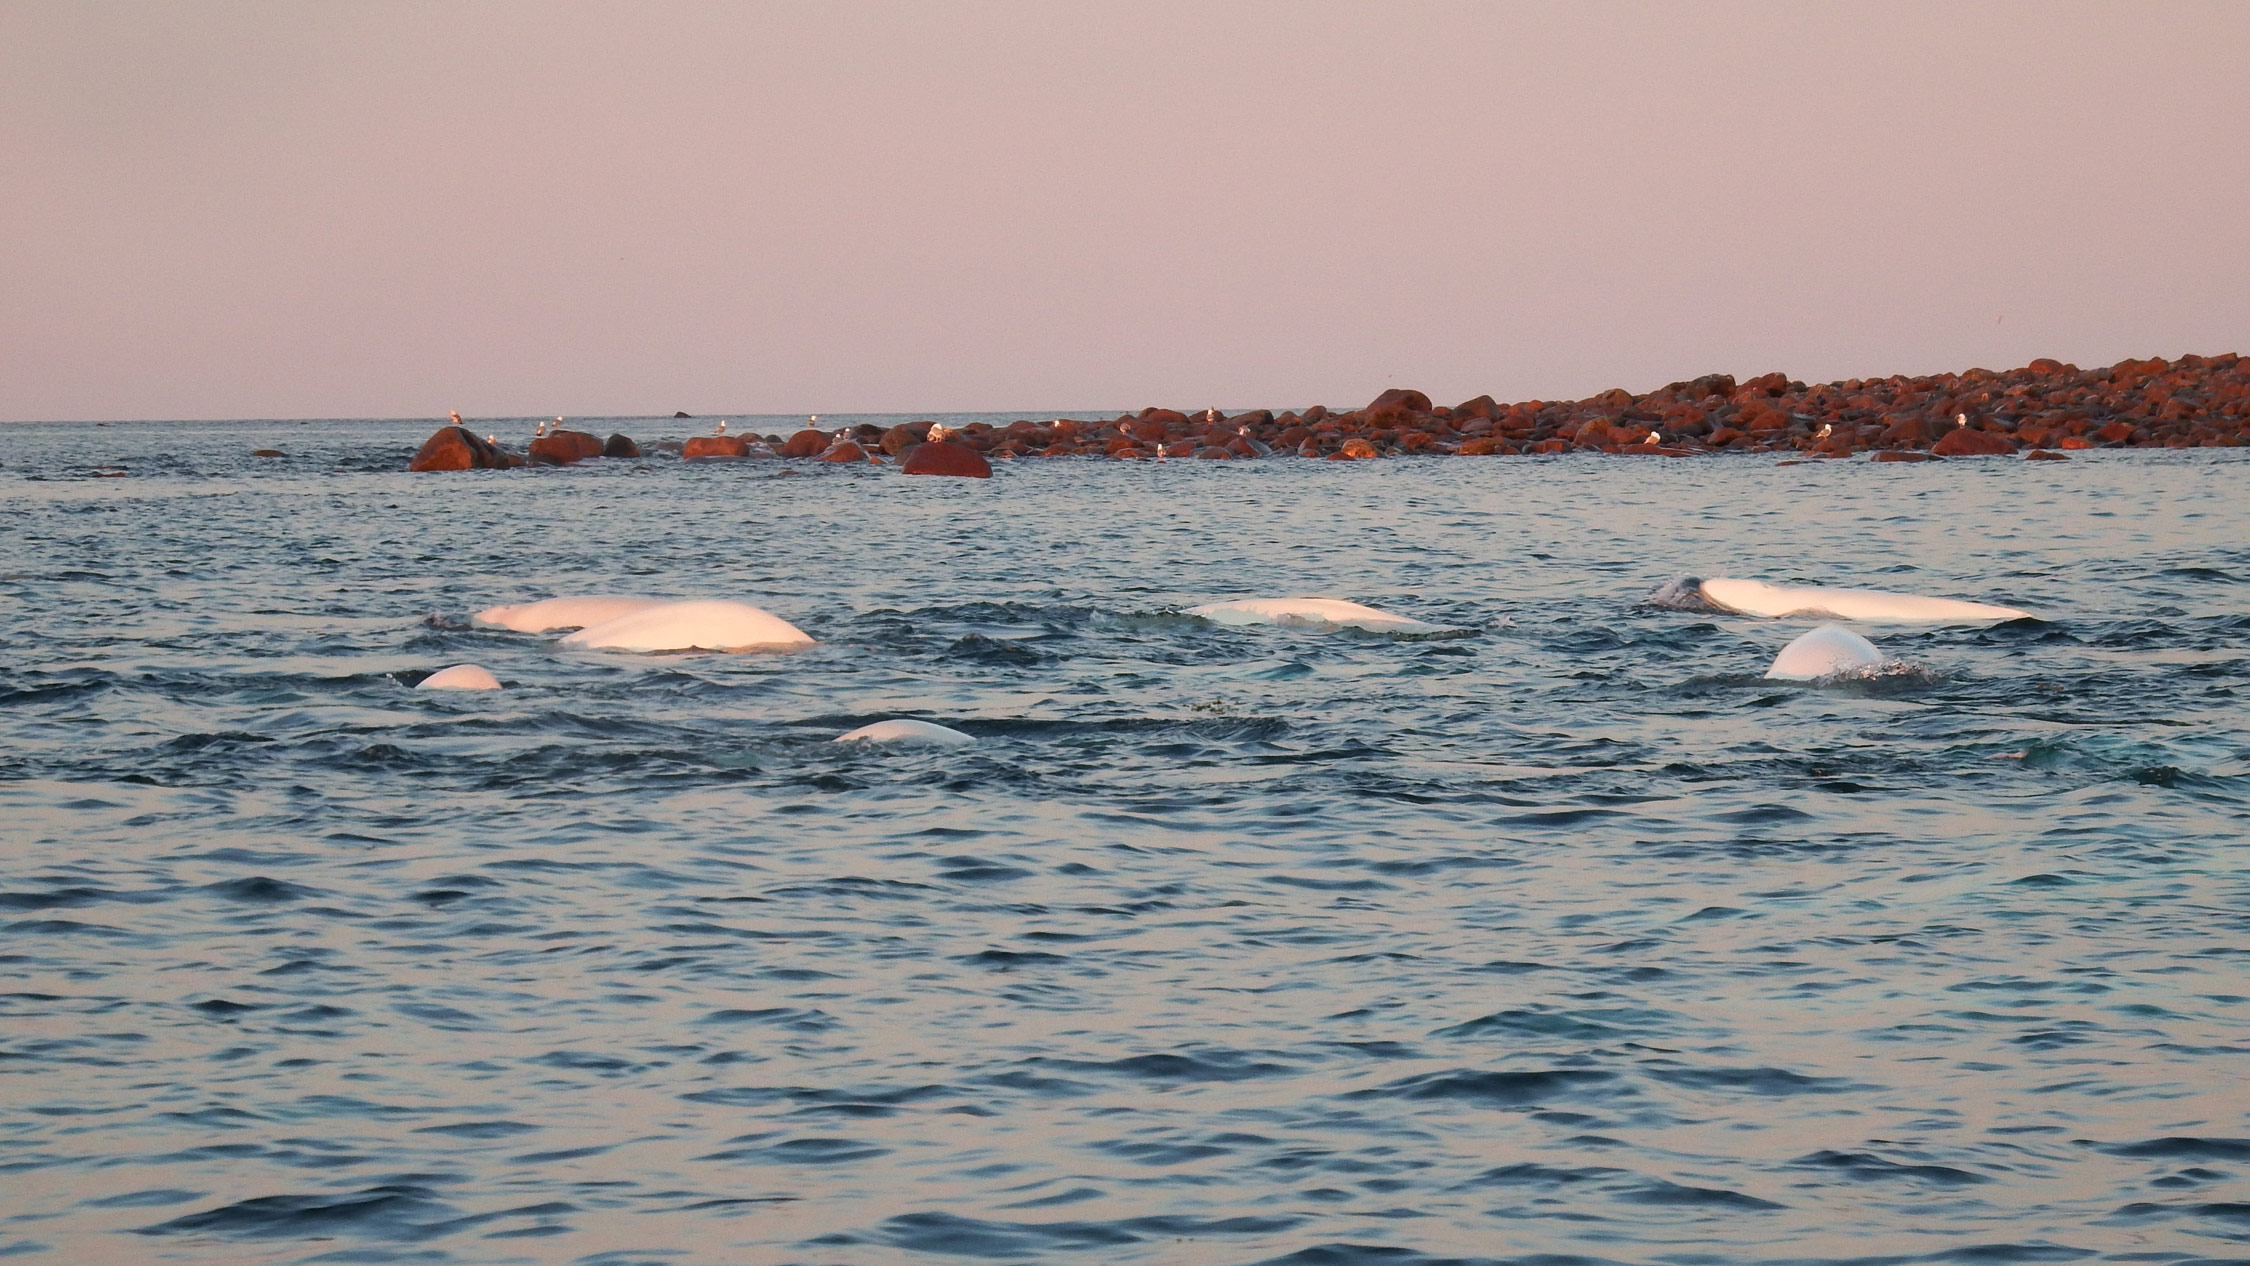 Beluga whales off Hubbard Point.